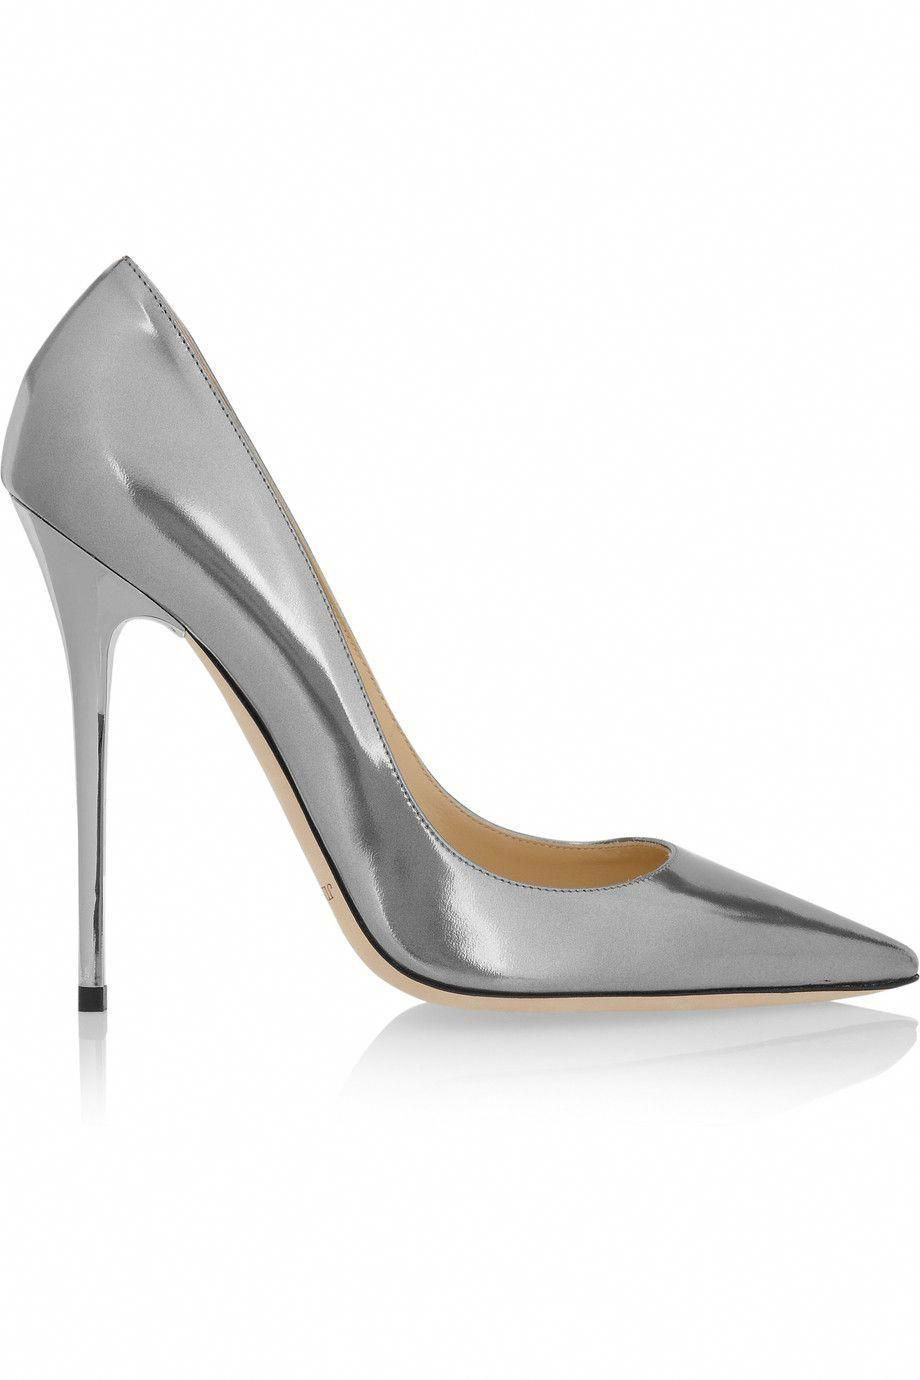 b2783d963 Jimmy Choo  Anouk  Silver Metallic Stiletto Pumps €450  Shoes  Heels  Choos   JimmyChoo